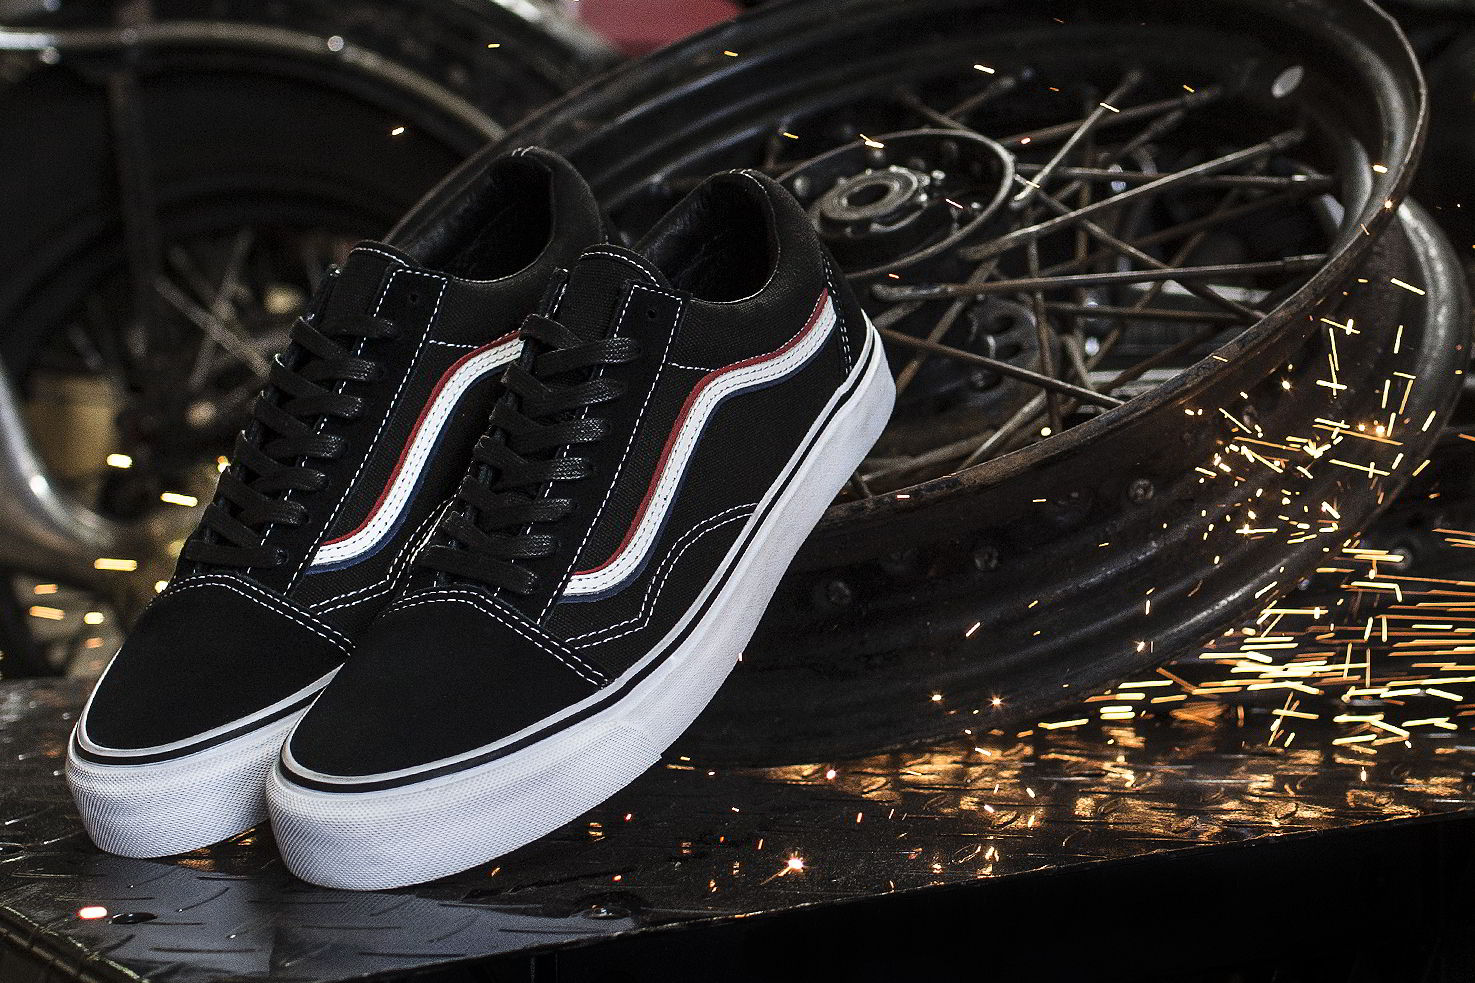 blends vans vault born free 8 collab 06 - Blends e Vans Vault lançam Old Skool inspirado por motoqueiros